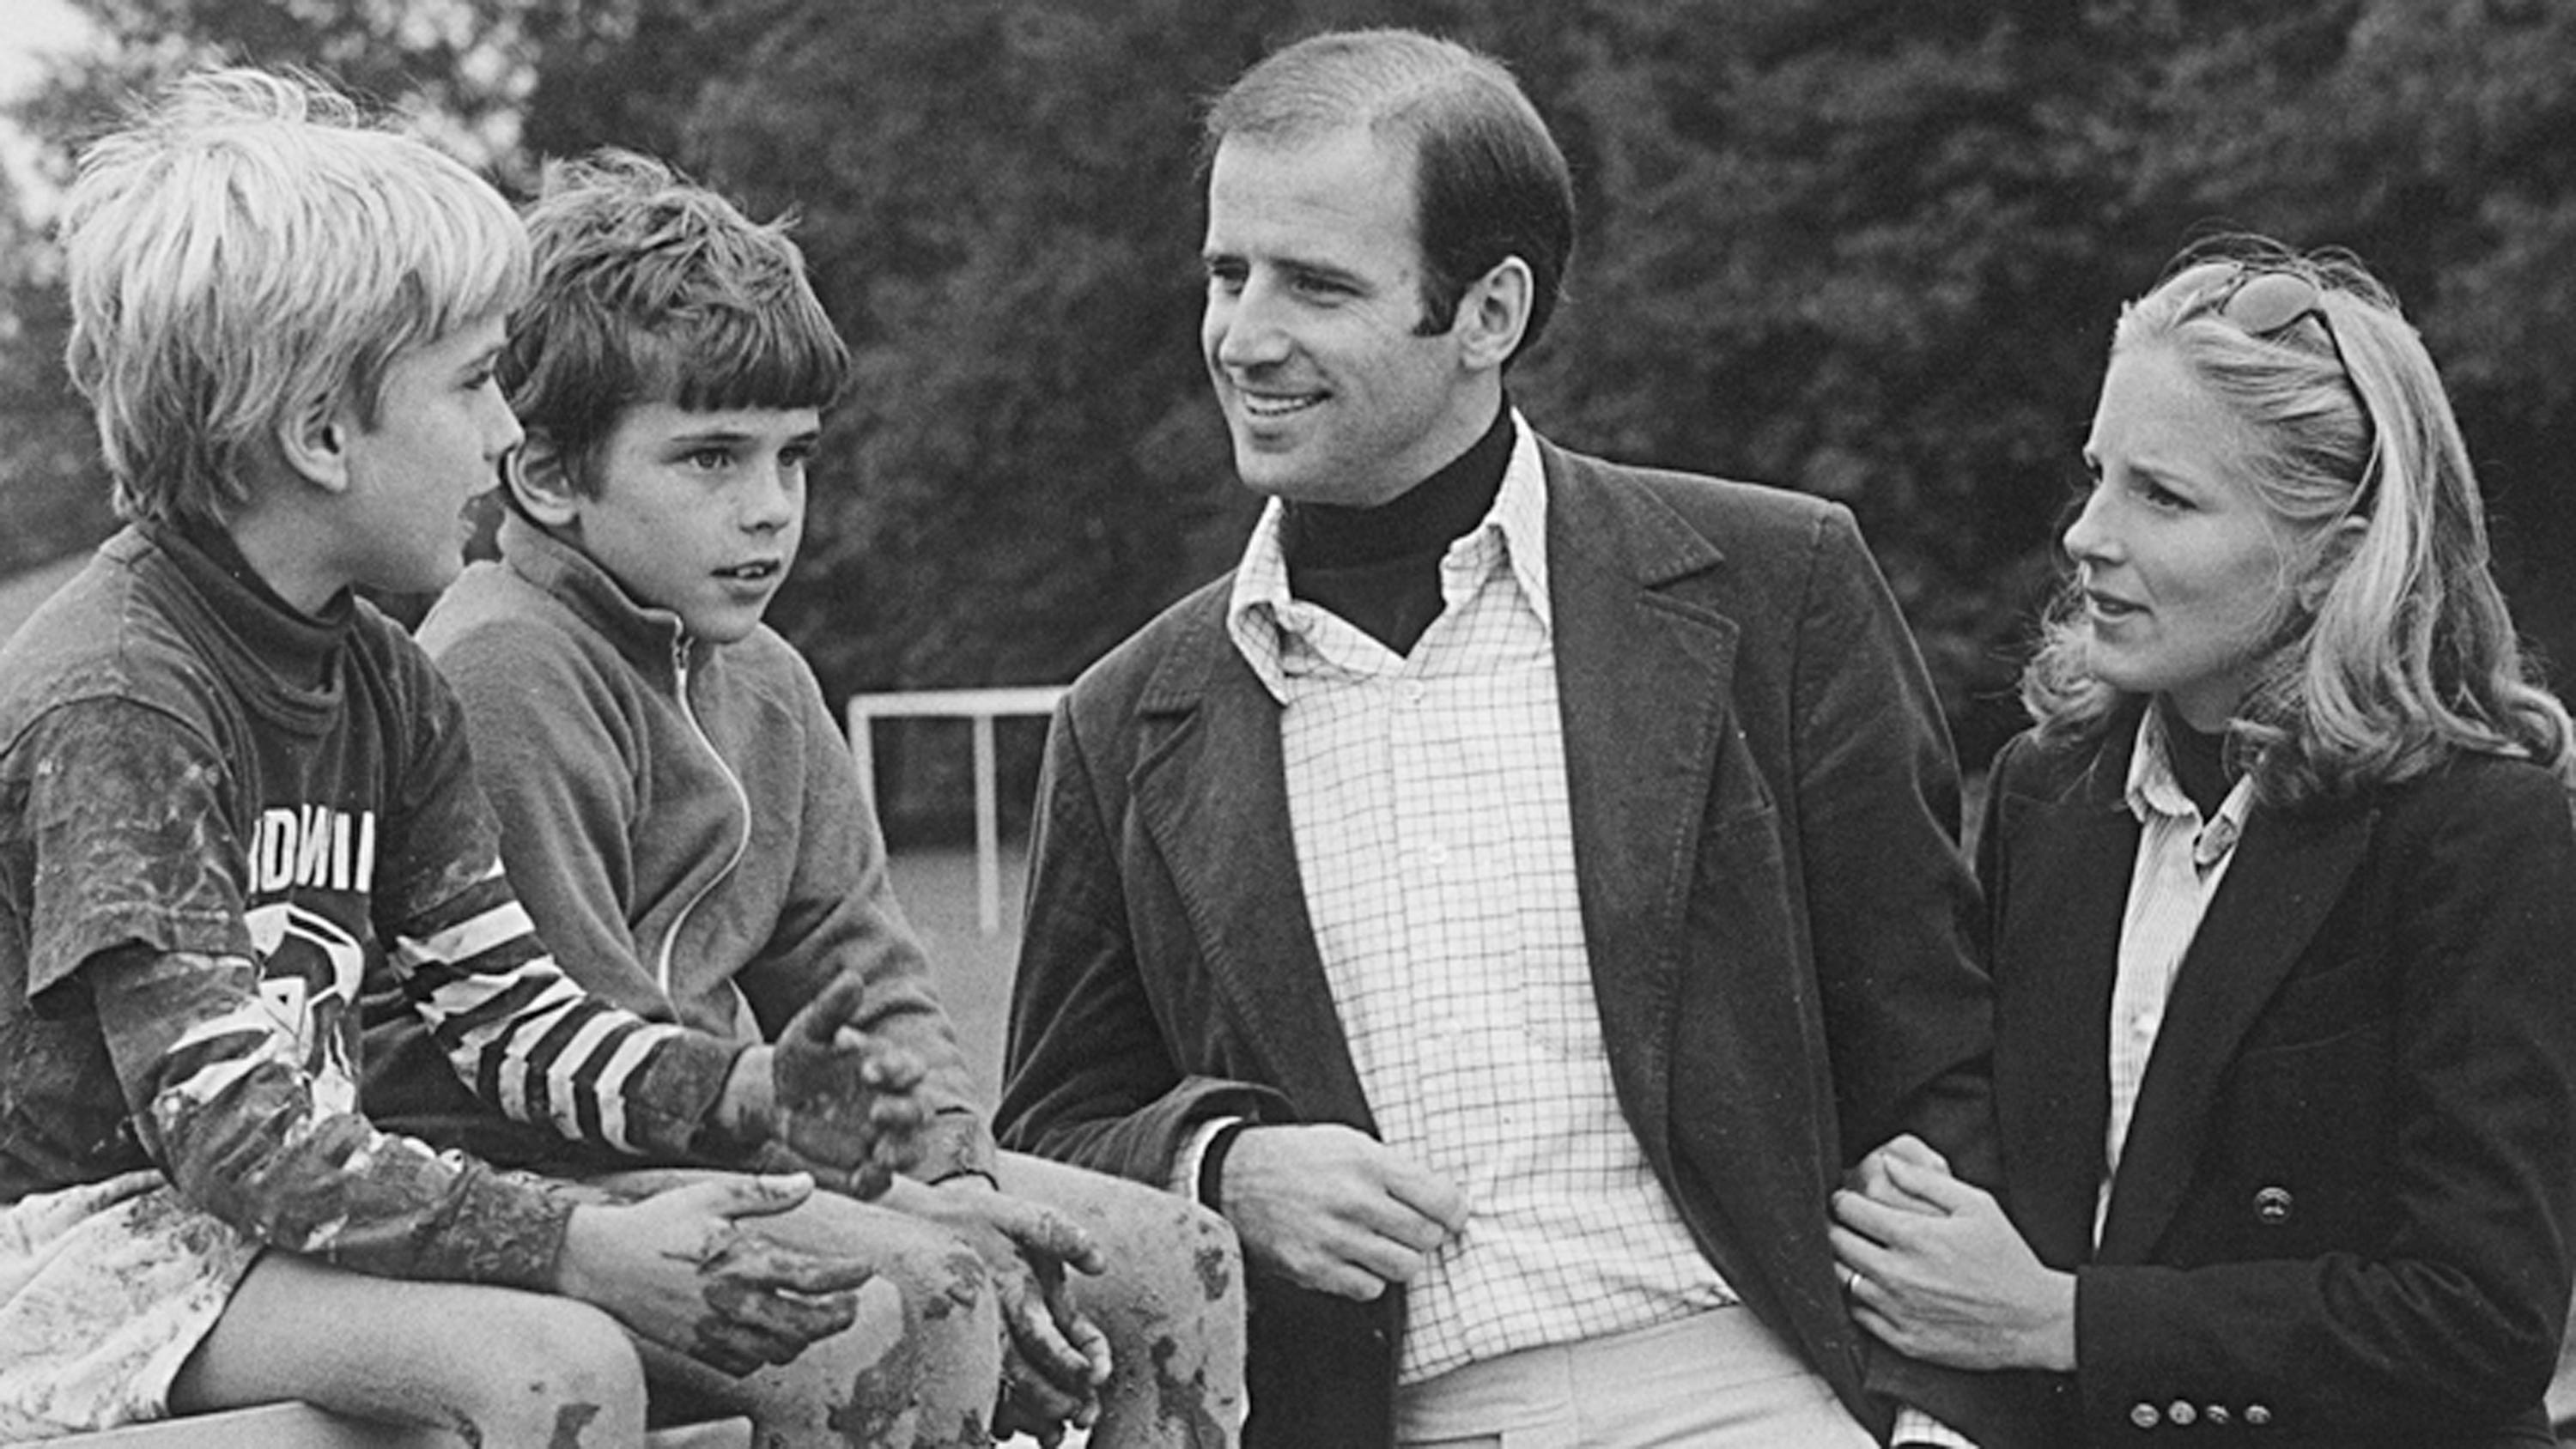 This image obtained from the official website of US Senator Joseph Biden shows him with his sons Beau, left,  and Hunter, and his future wife Jill in an undated photo.